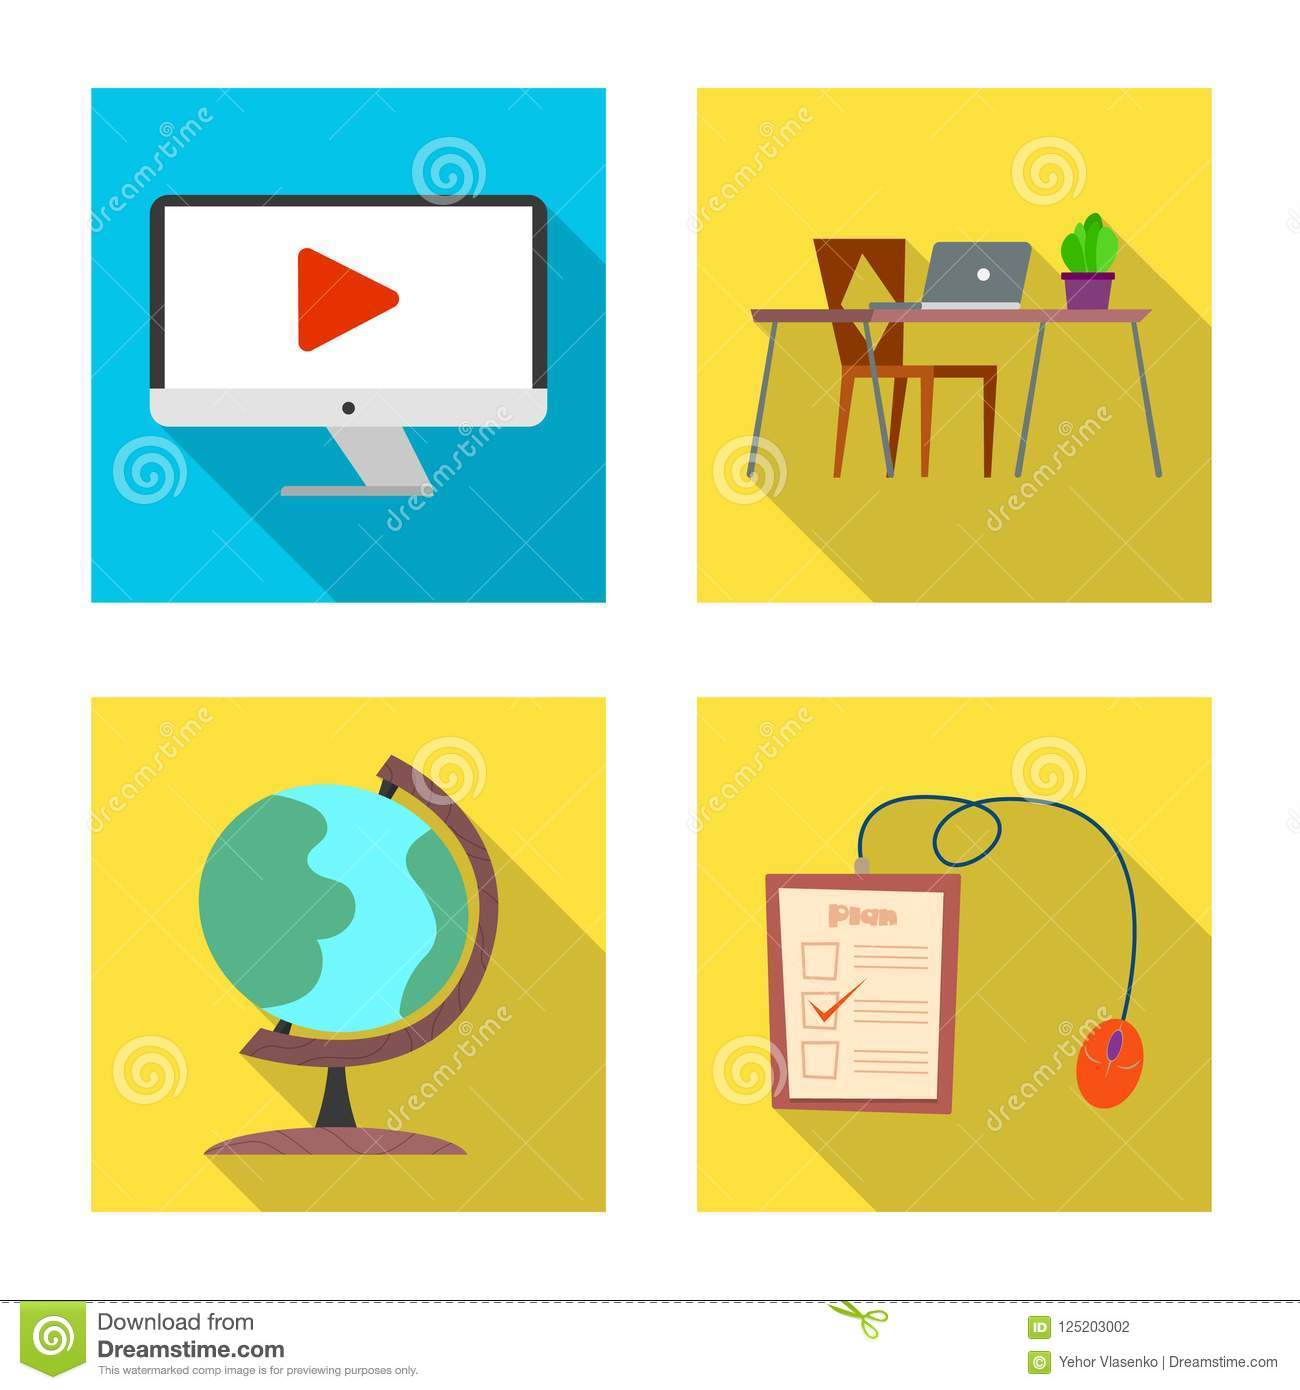 Vector Illustration Of Education And Learning Sign Set Of Education